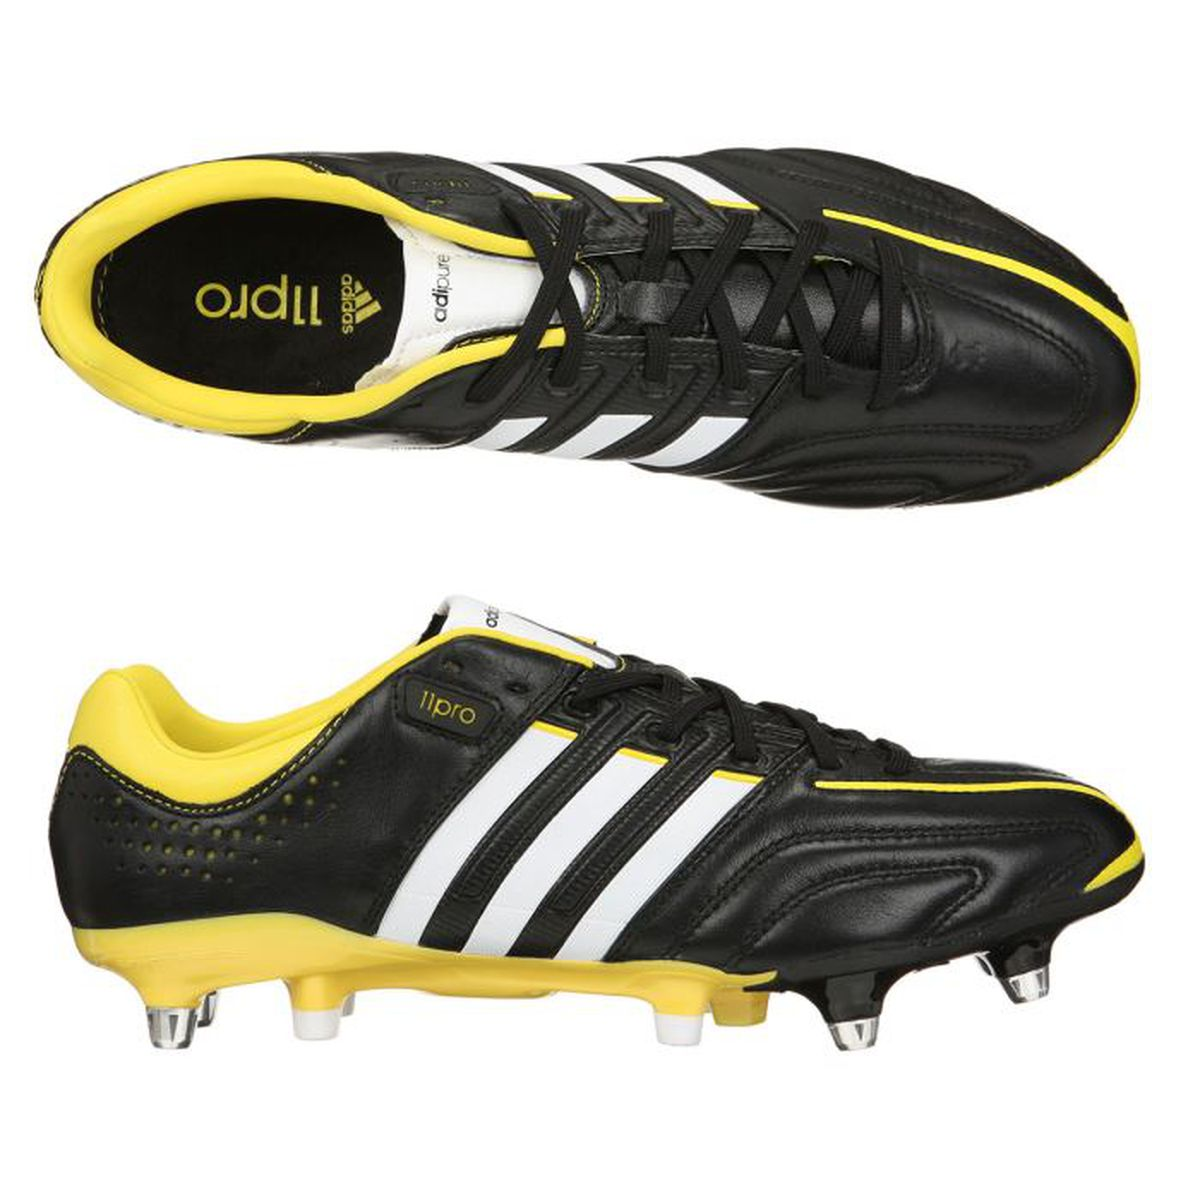 adidas chaussures football adipure 11pro xtrx sg